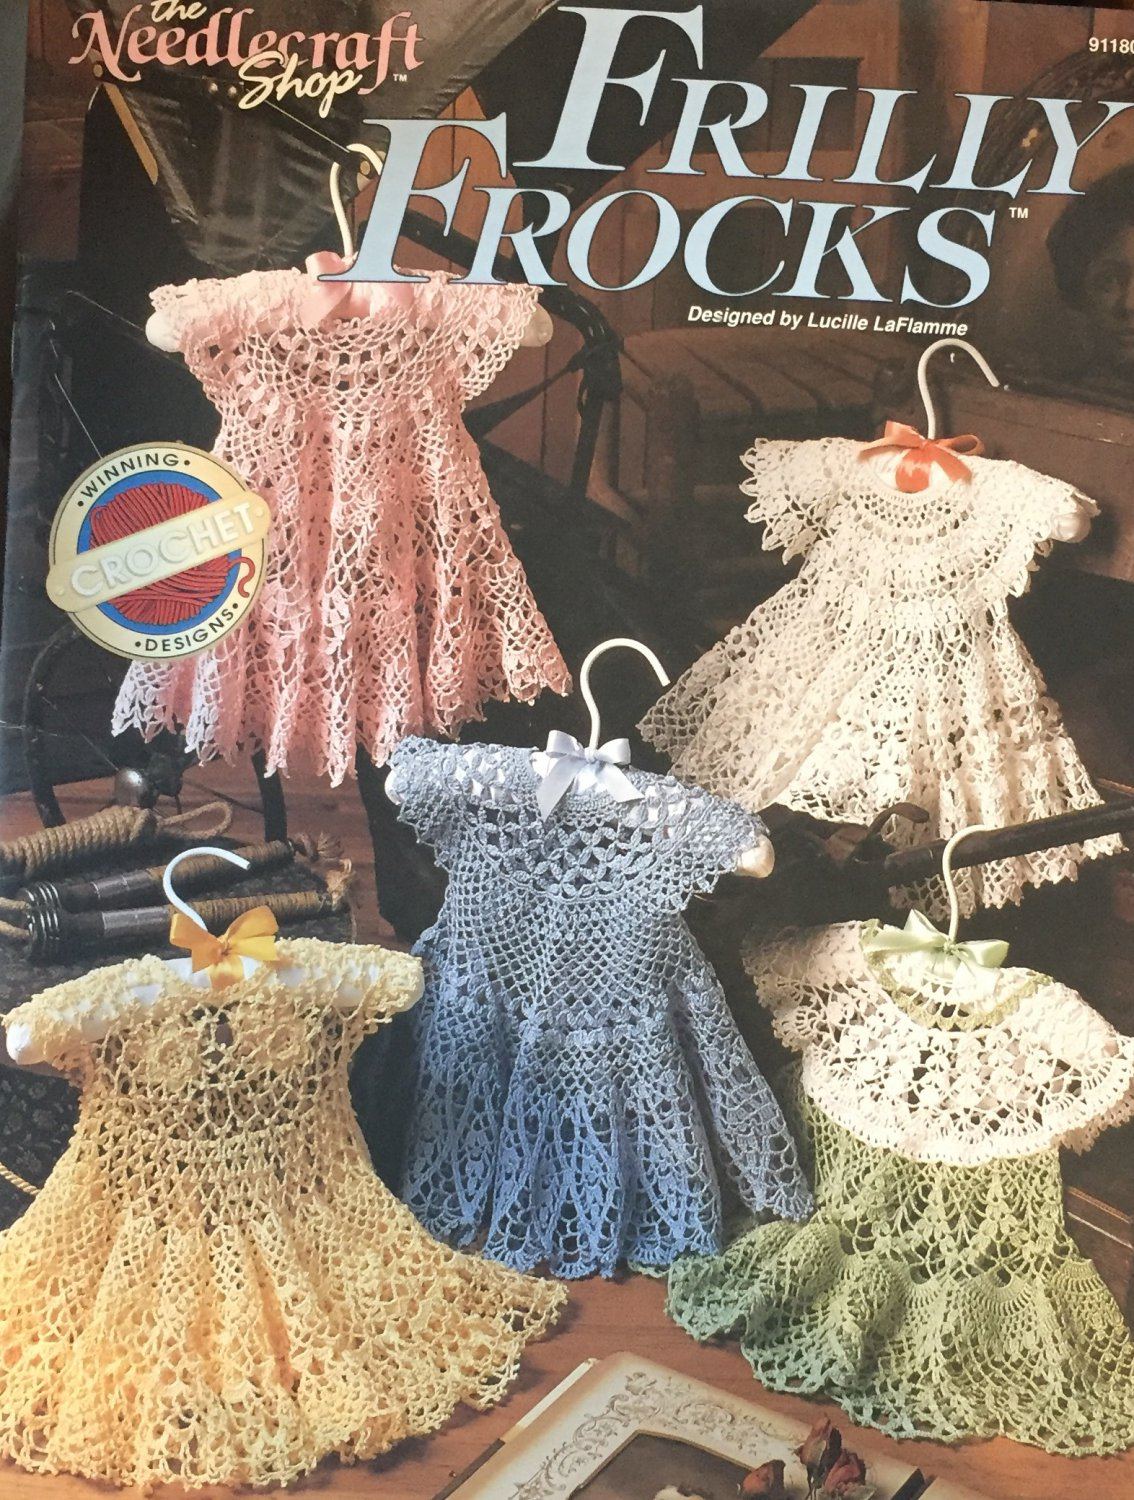 Frilly Frocks Lucille LaFlamme Crochet Dresses Instruction Pattern Book The Needlecraft Shop 911801